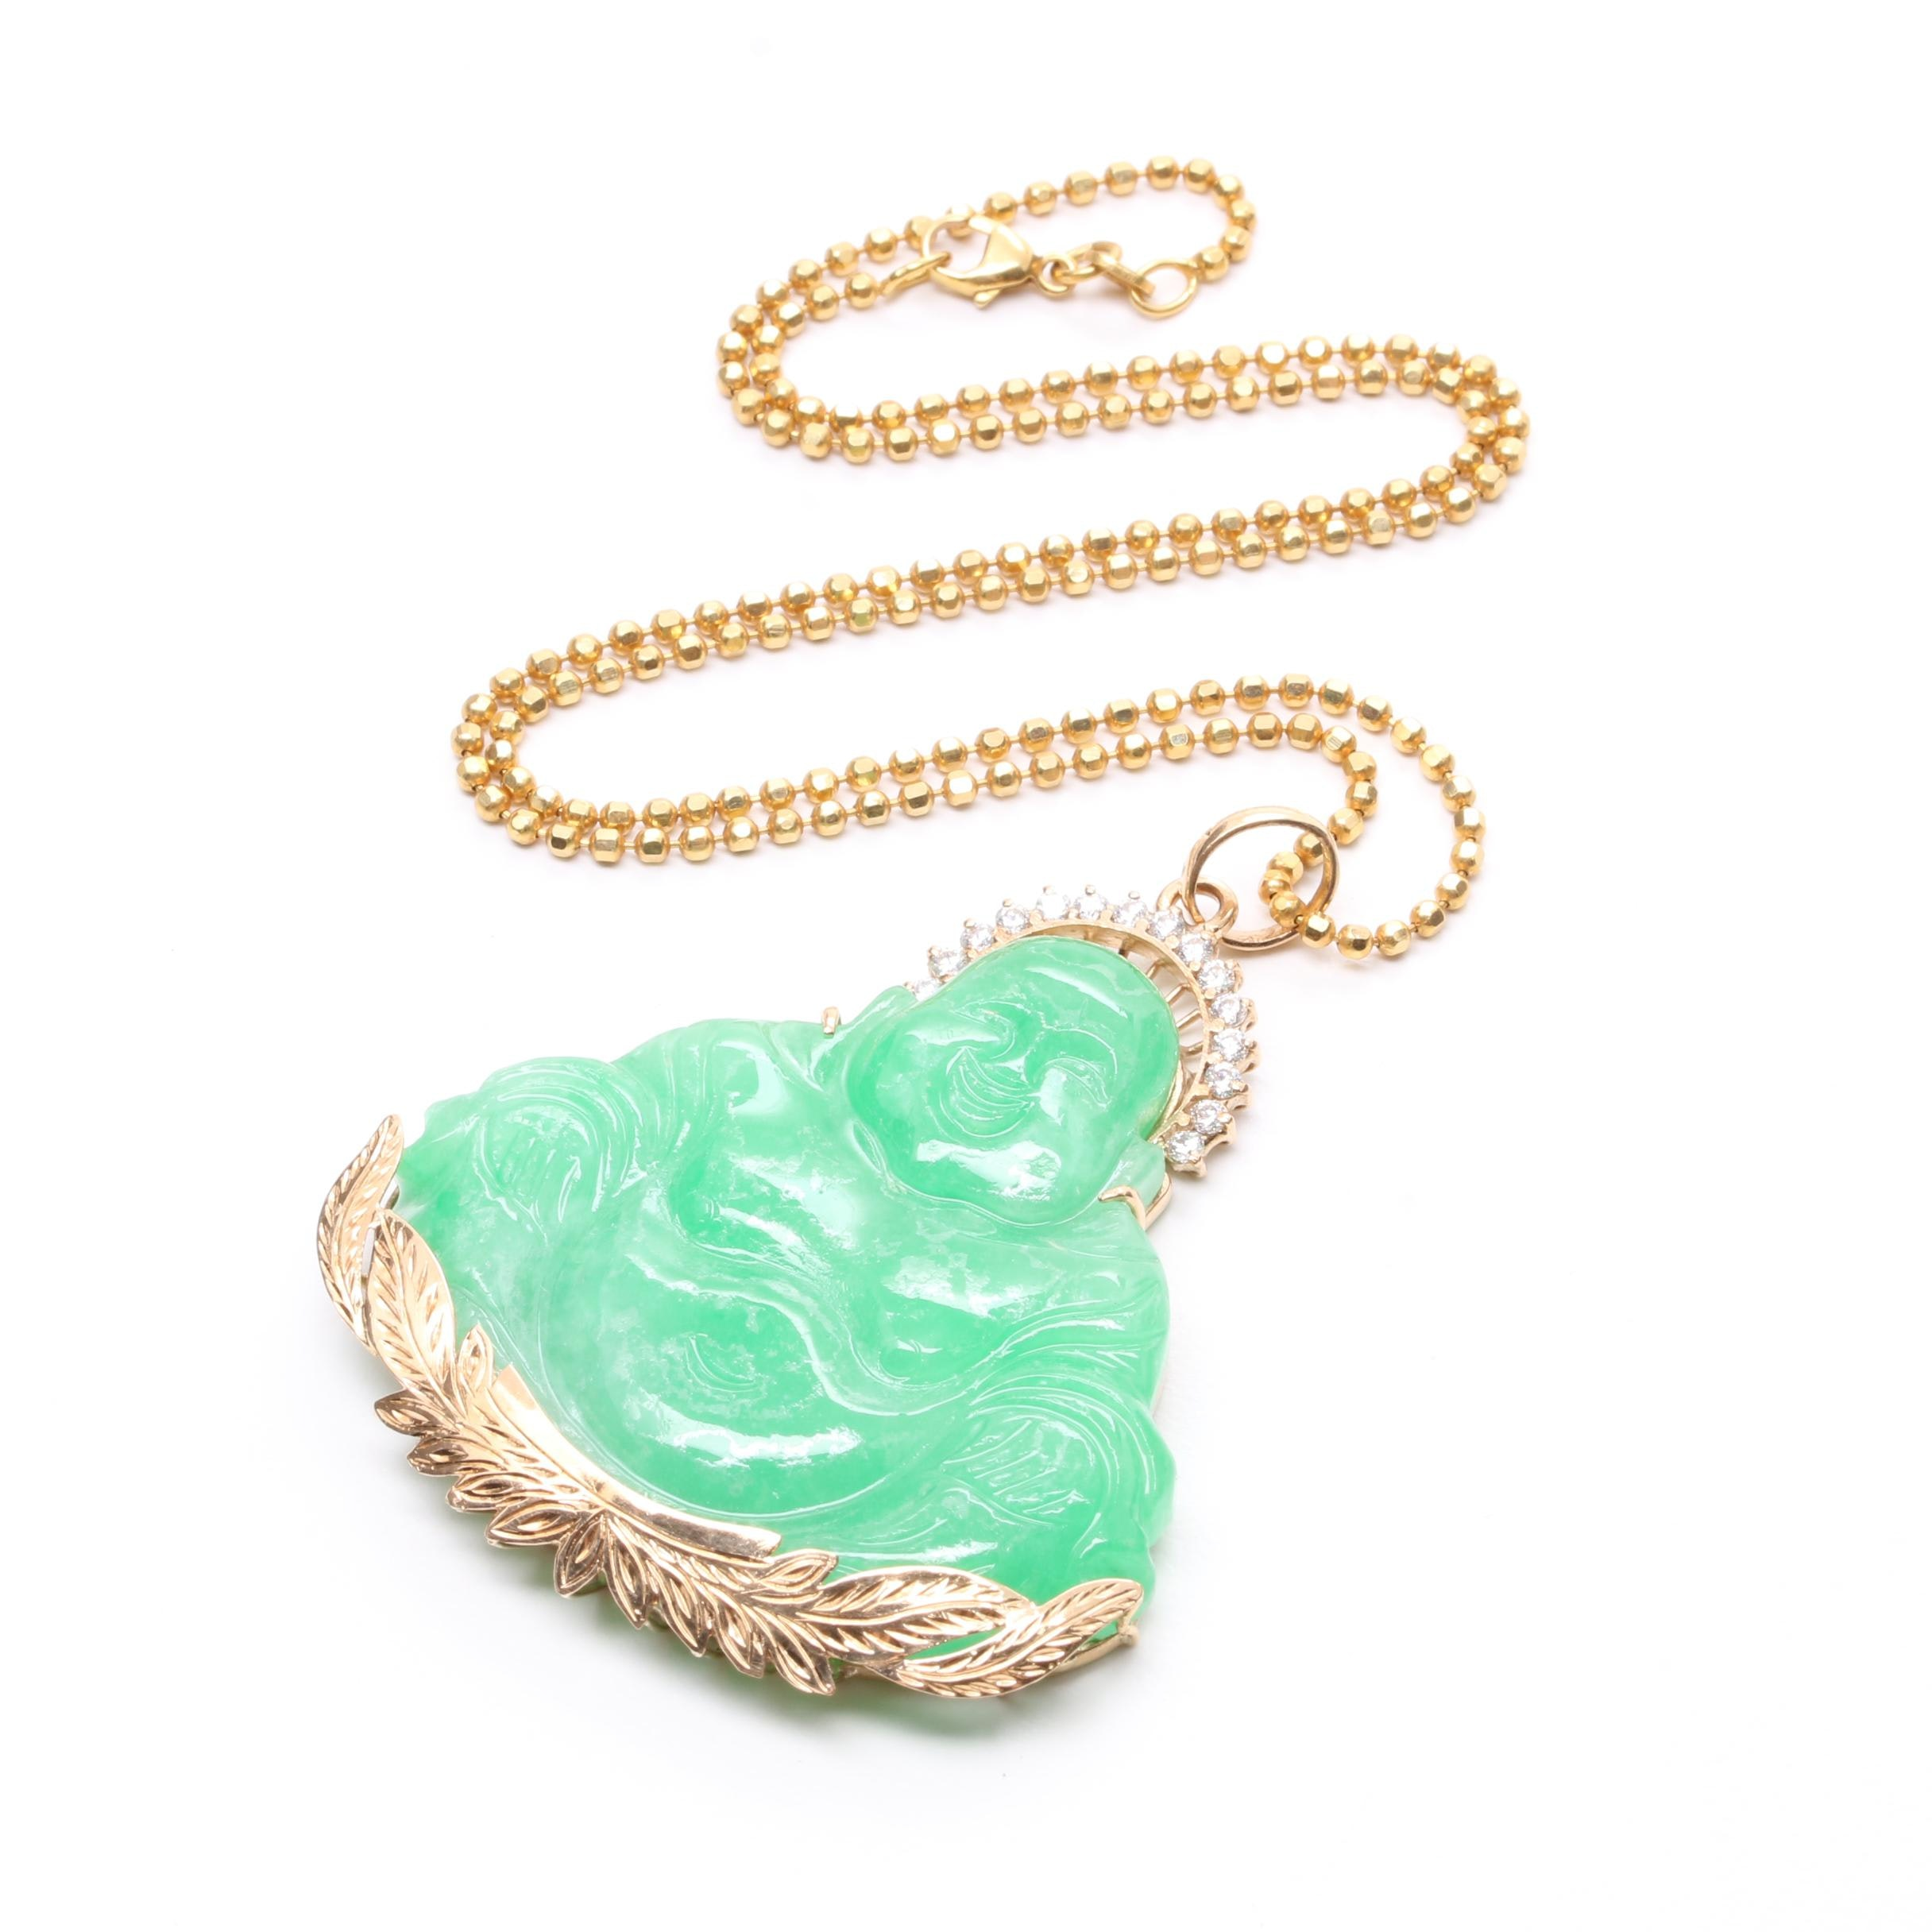 14K Yellow Gold Jadeite and Cubic Zirconia Pendant Necklace